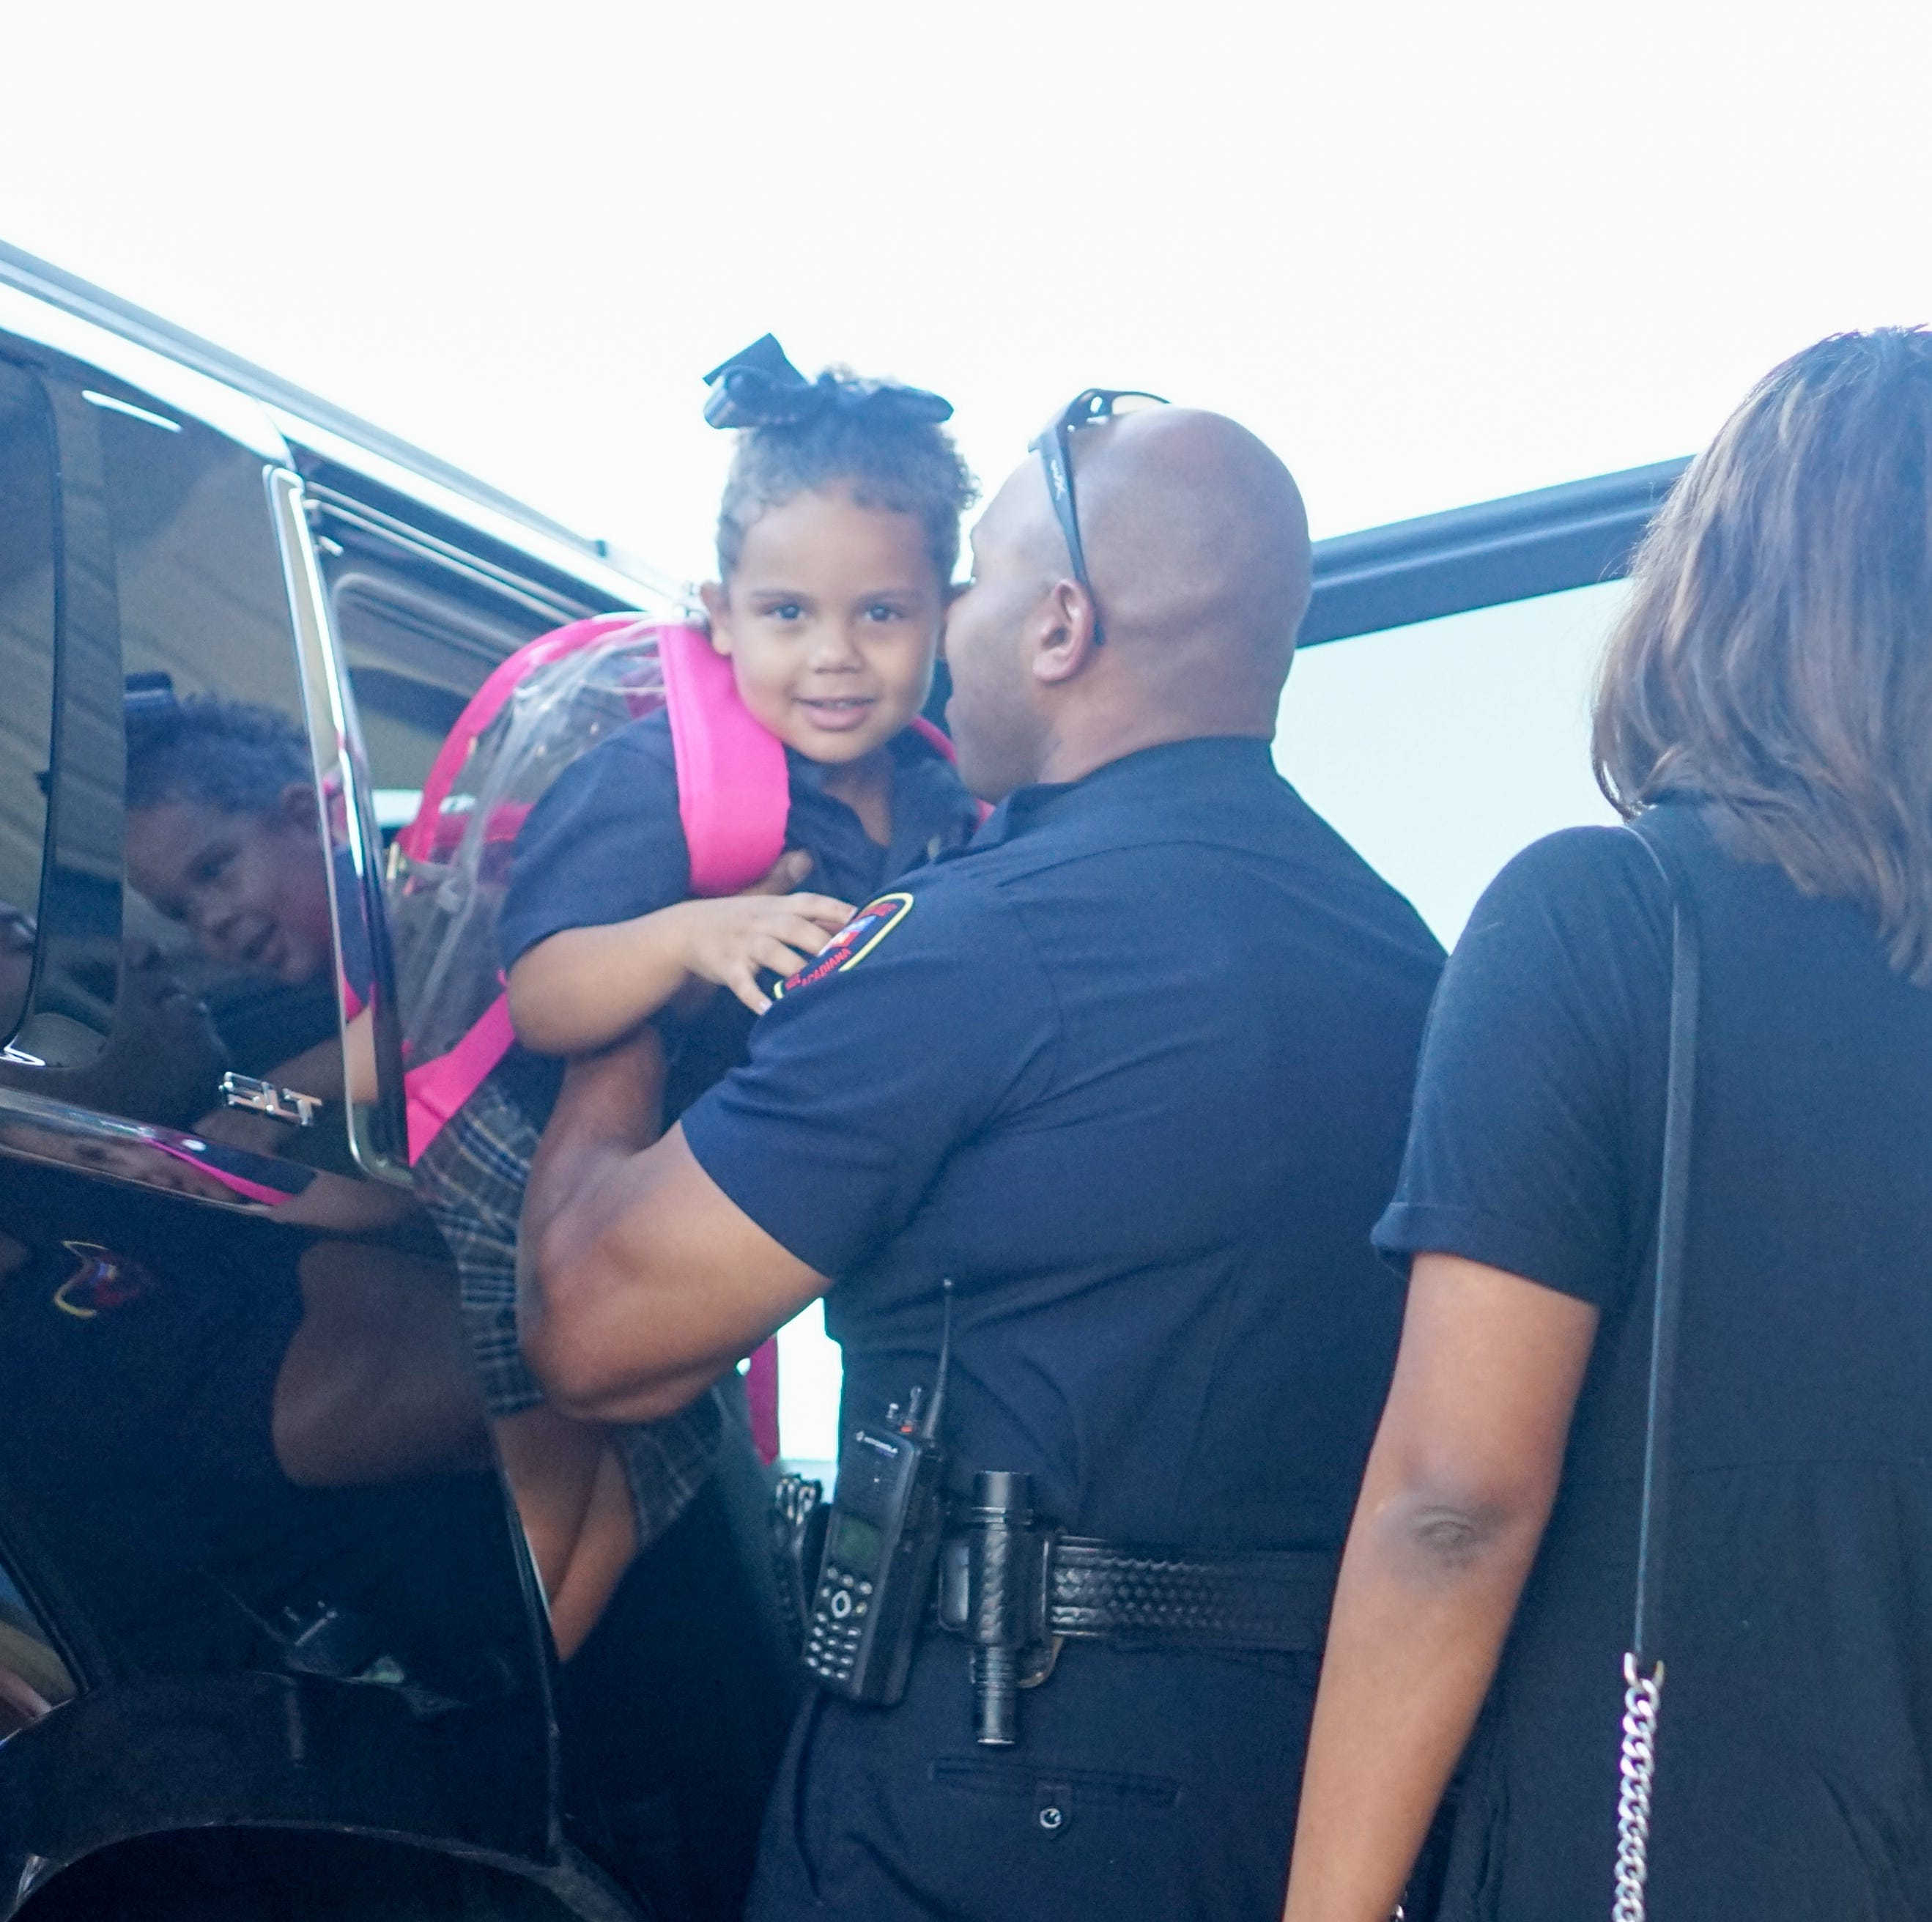 Officers escort Cpl. Middlebrook's daughter to first day of school